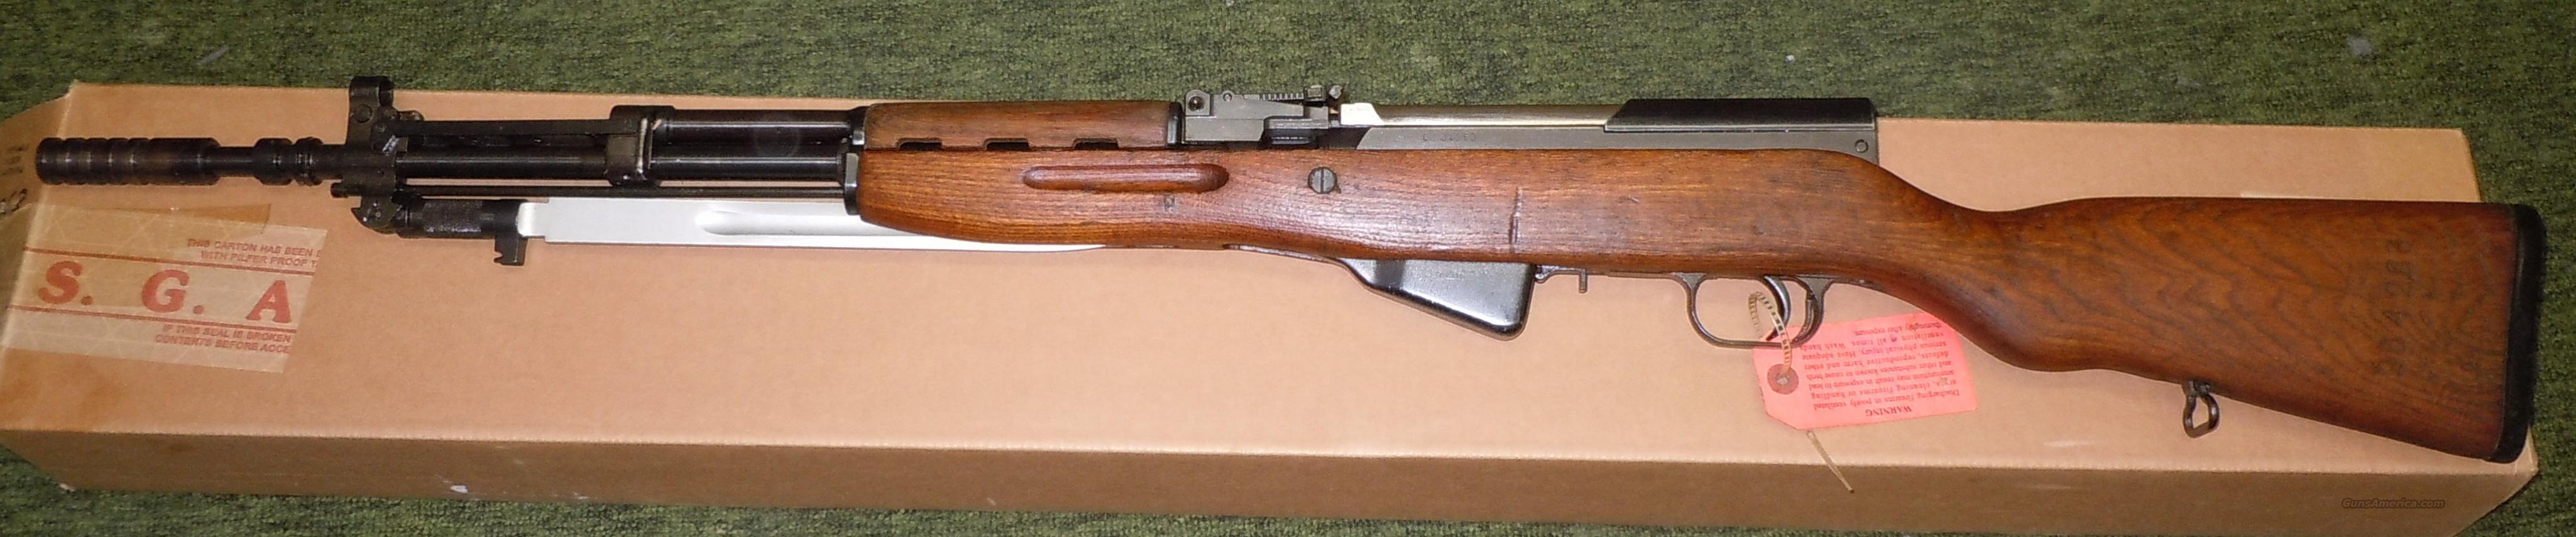 ZASTAVA M59/66A1 7.62X39 SKS RIFLE  Guns > Rifles > SKS Rifles